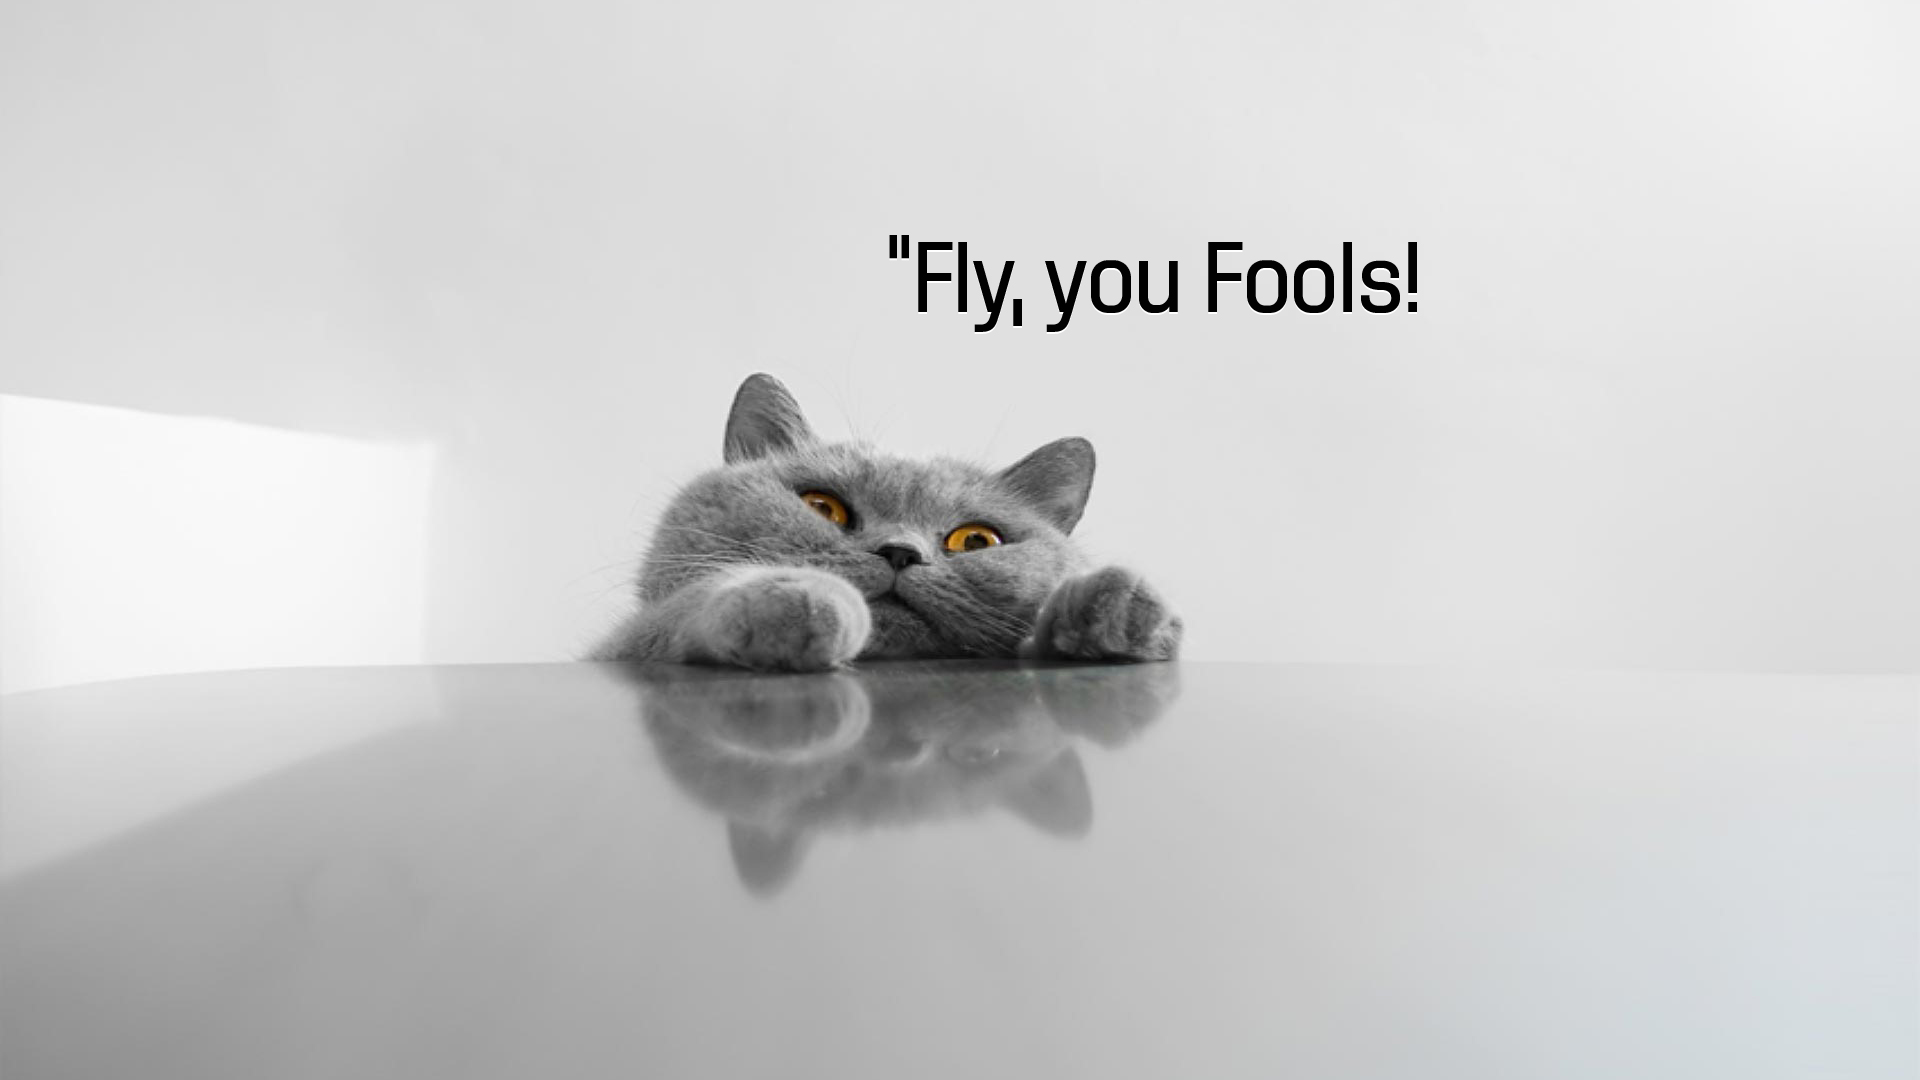 Fly, you fools!